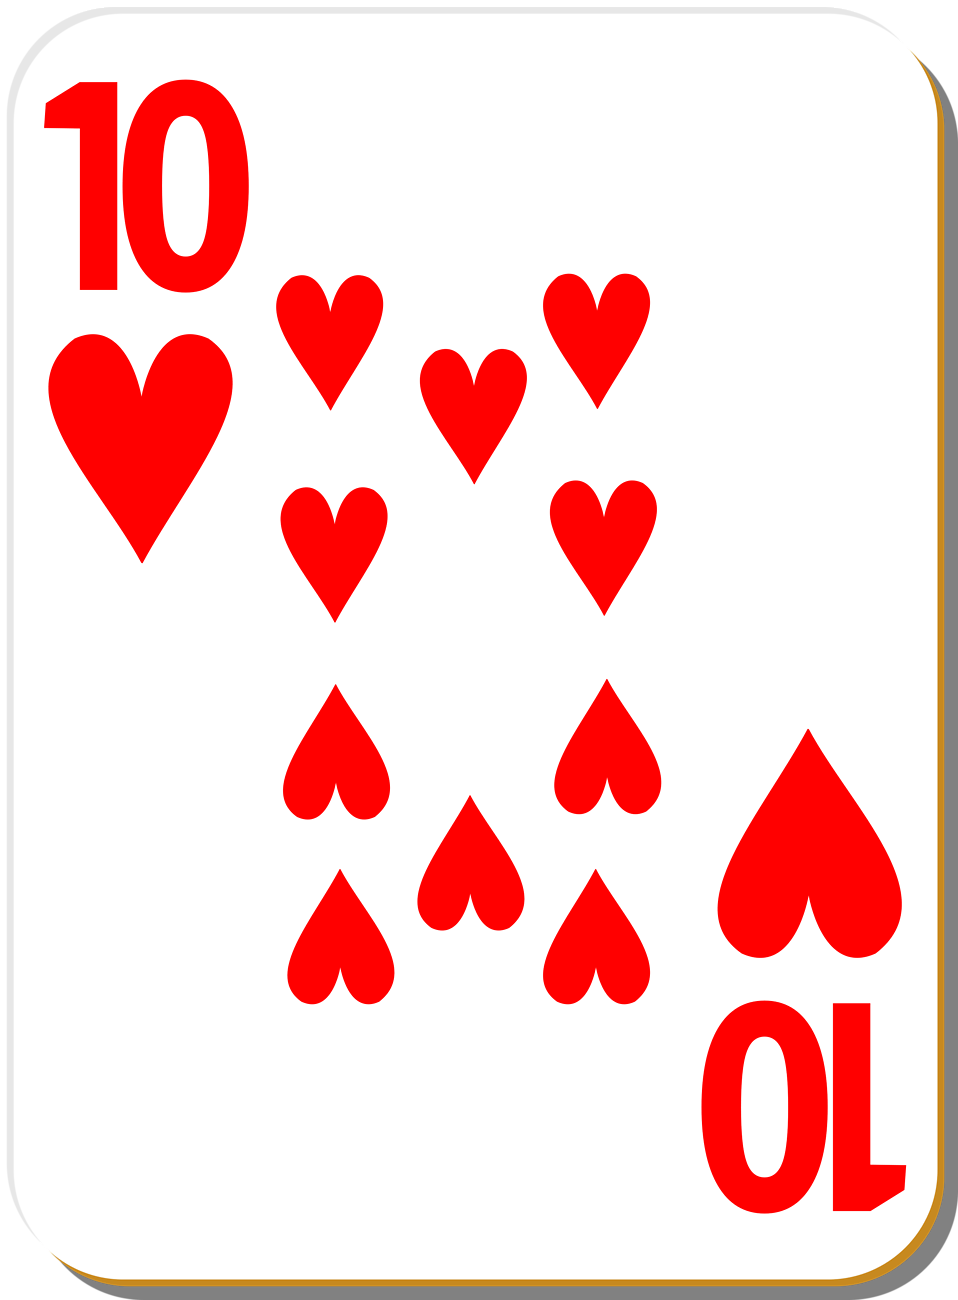 Queen of hearts clipart with no background png transparent stock Heart Playing Cards Clipart - Clipart Kid png transparent stock